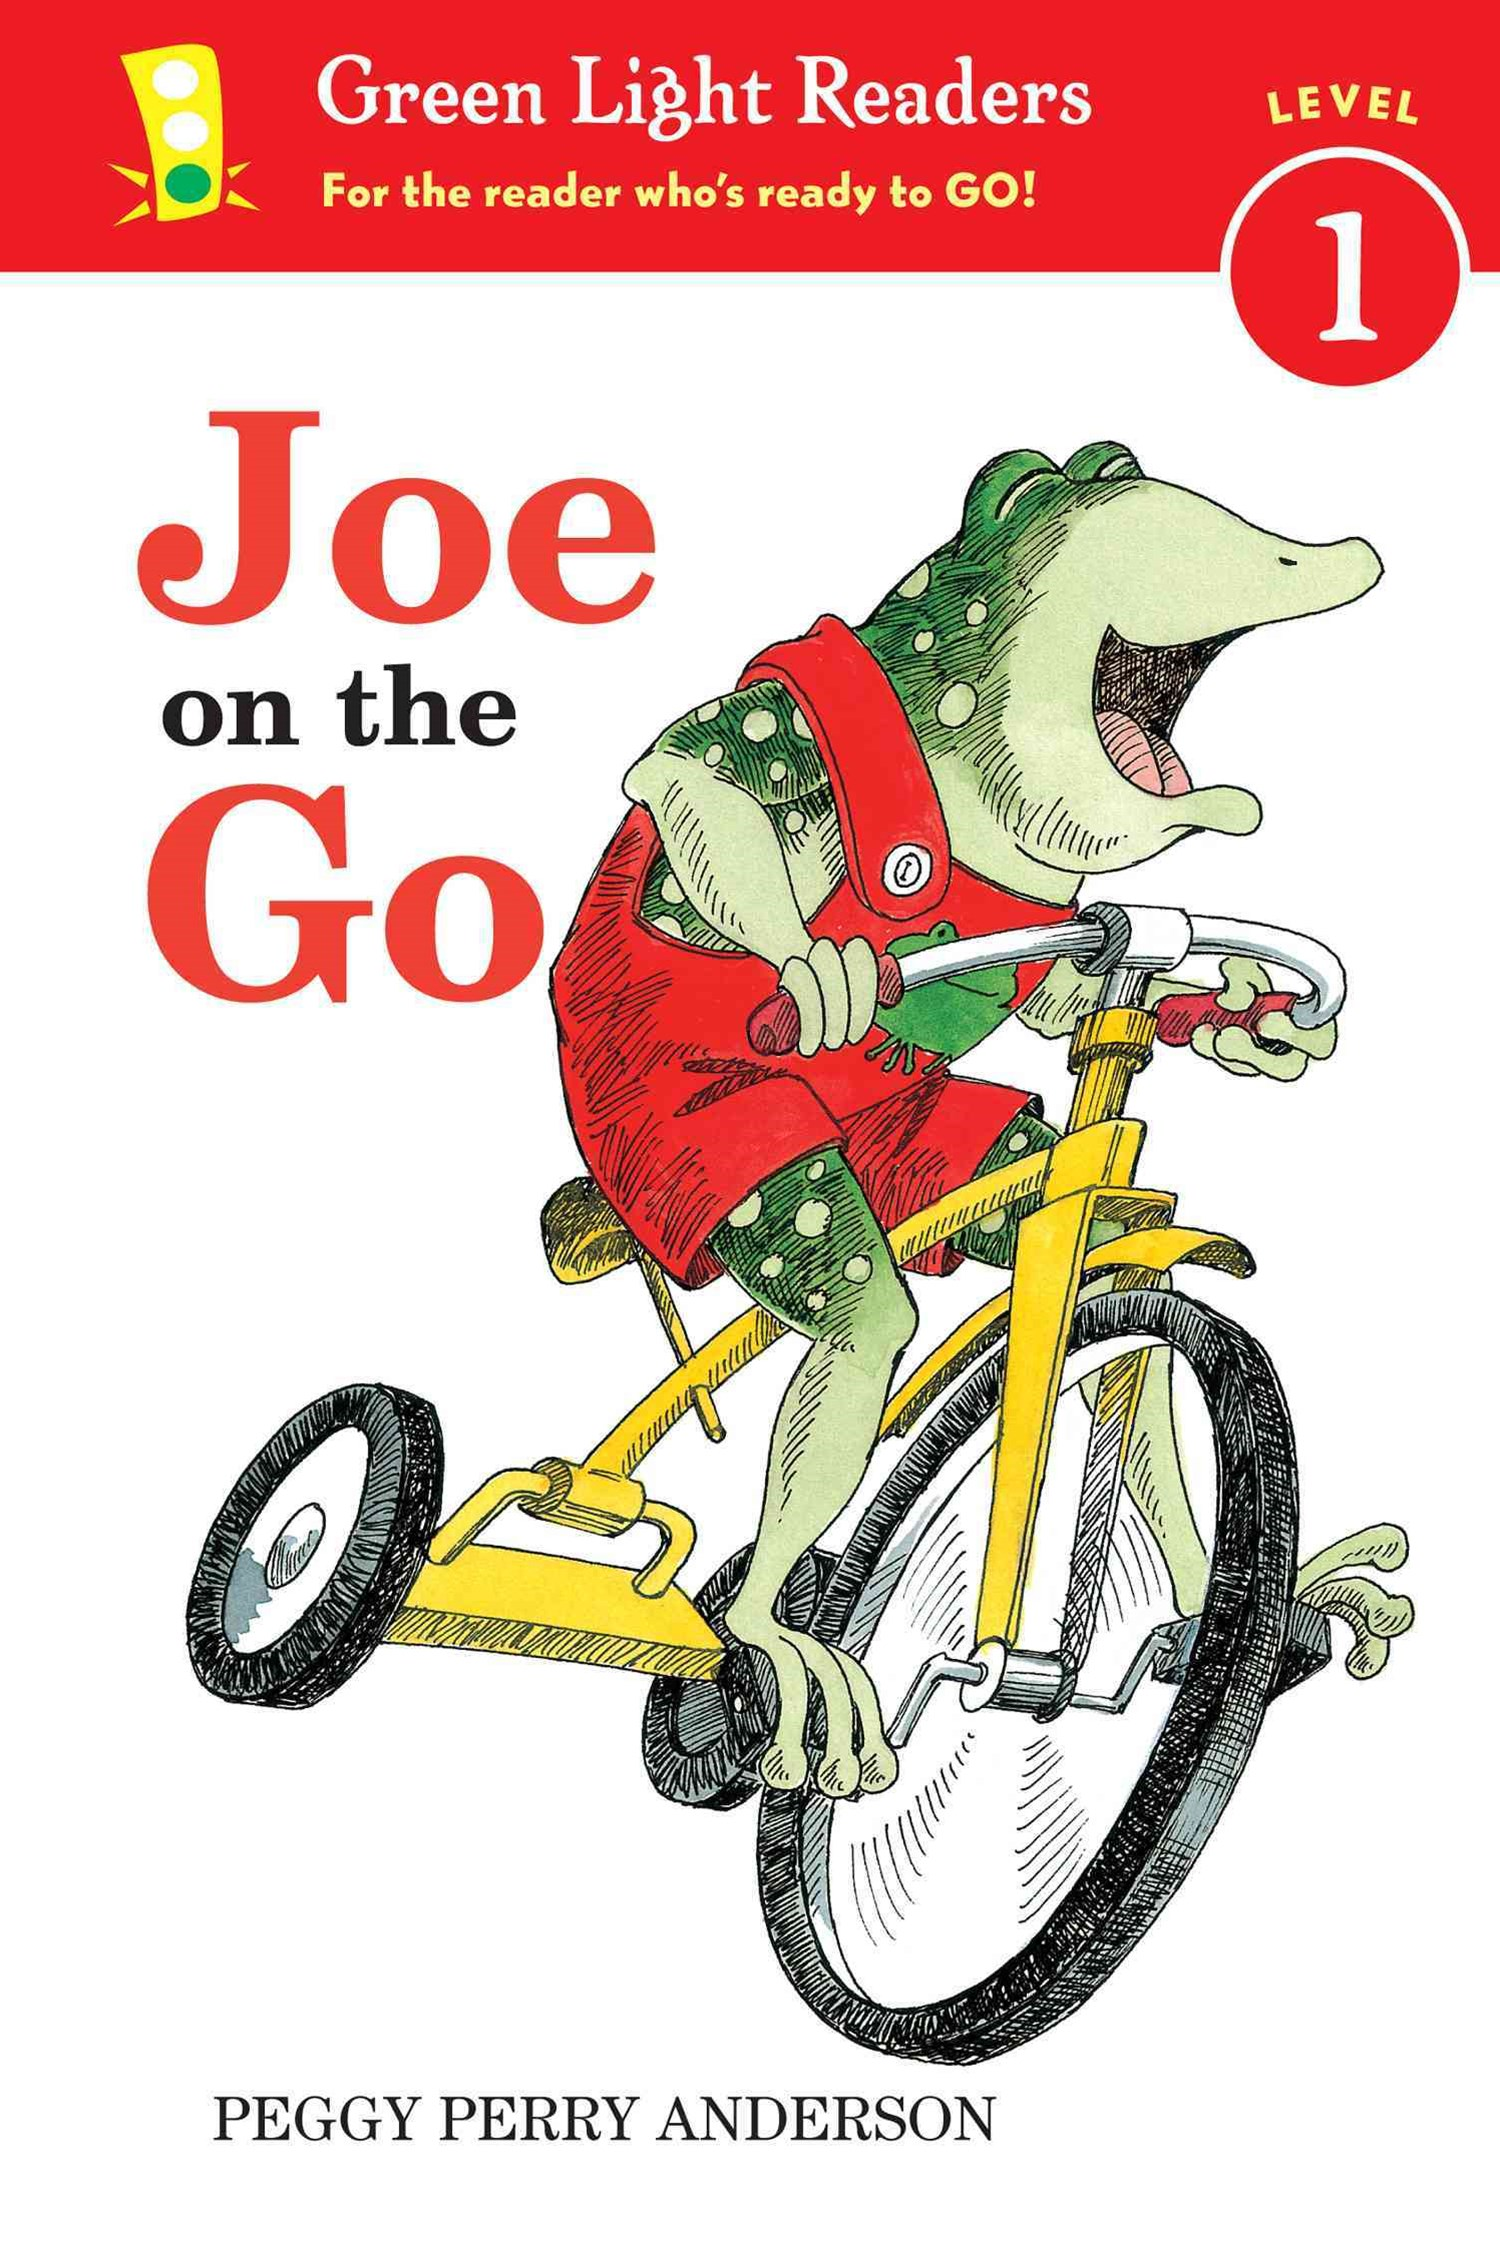 Joe on the Go: Green Light Readers Level 1